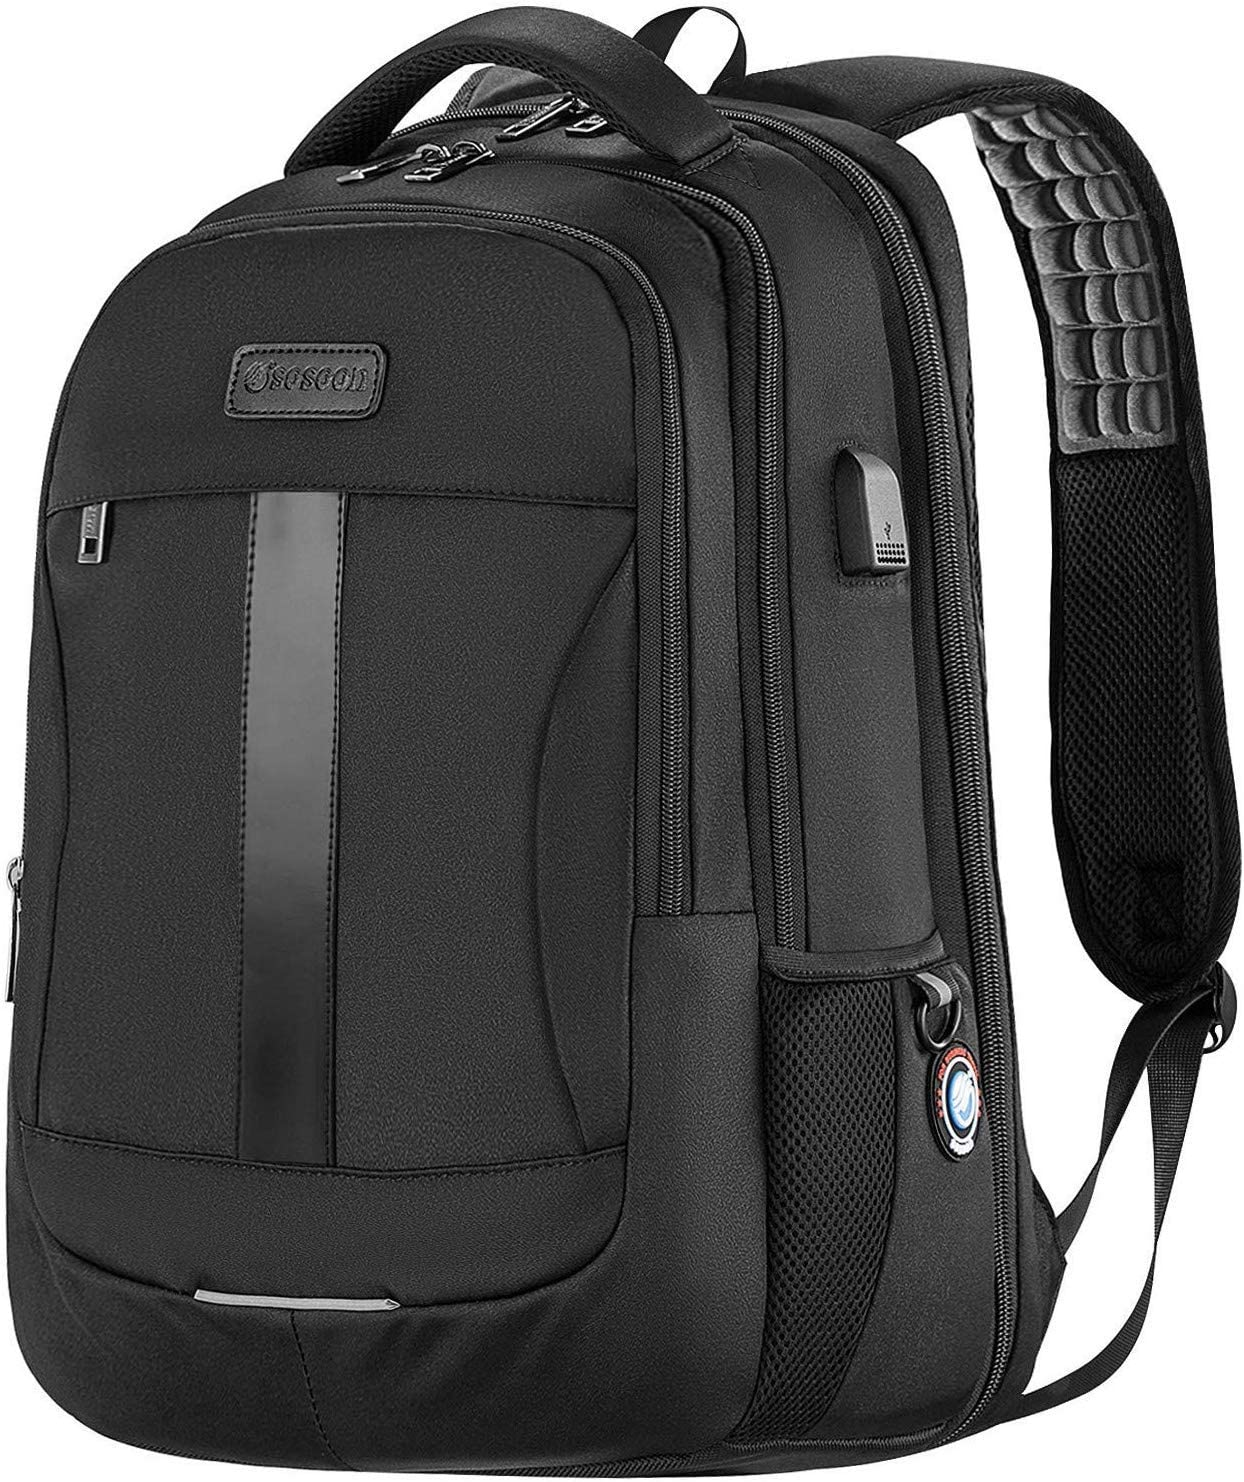 Sosoon 15.6 - 17 inch Laptop Backpack